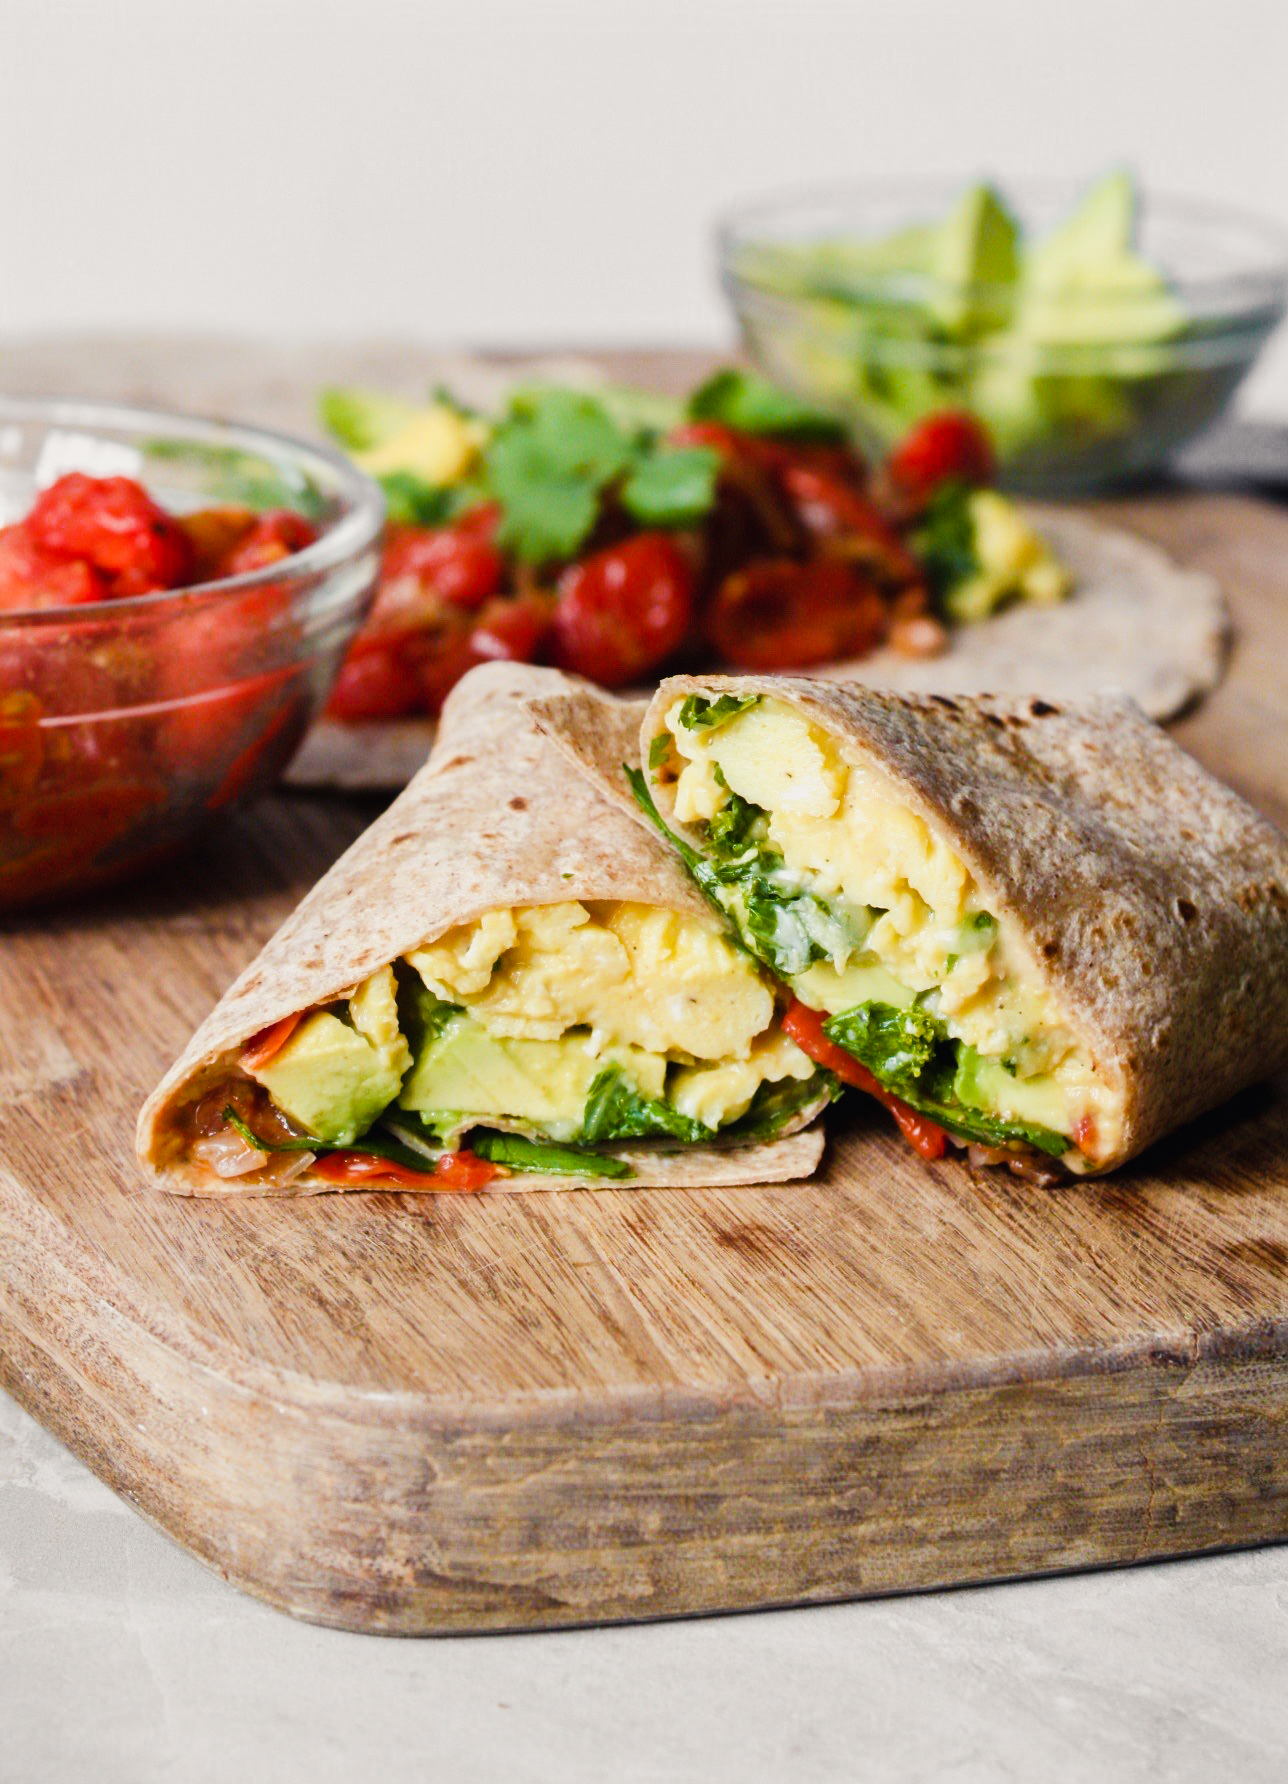 Photograph of a breakfast burrito on a wood cutting board